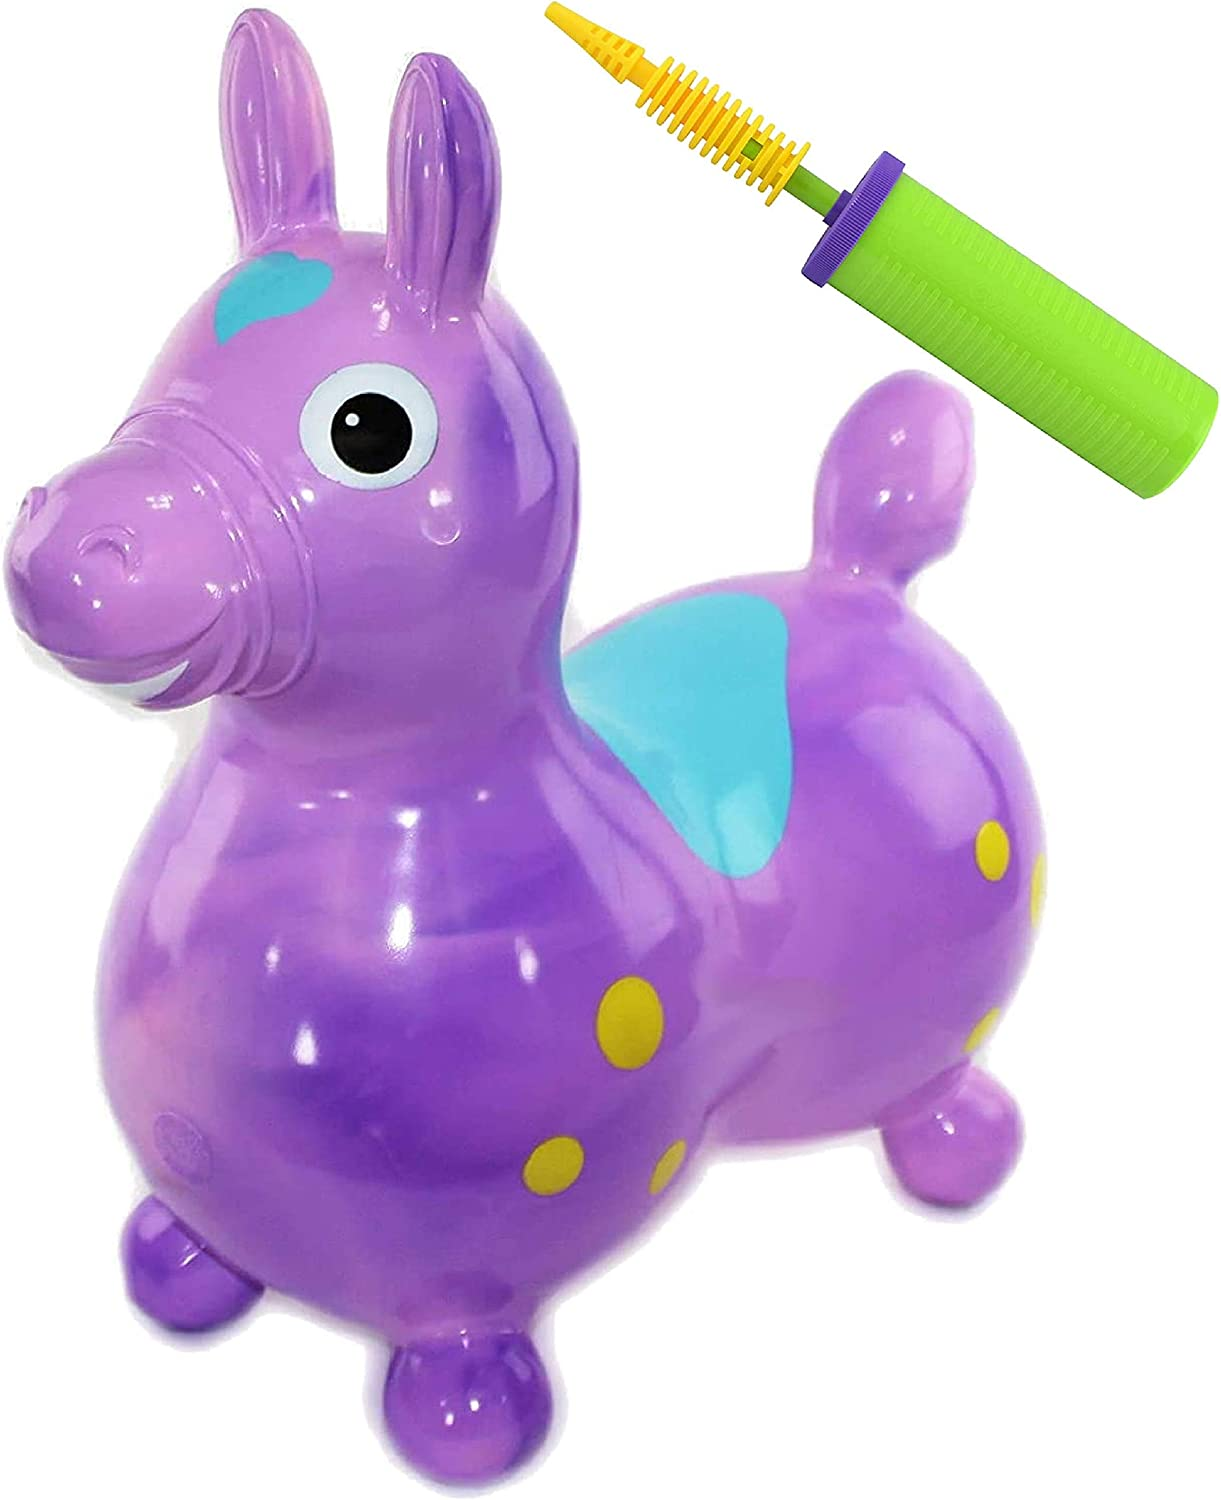 GYMNIC Rody Horse Inflatable Bounce & Ride, Matty's Toy Stop Exclusive Purple & Pink Swirl (70254) with Pump